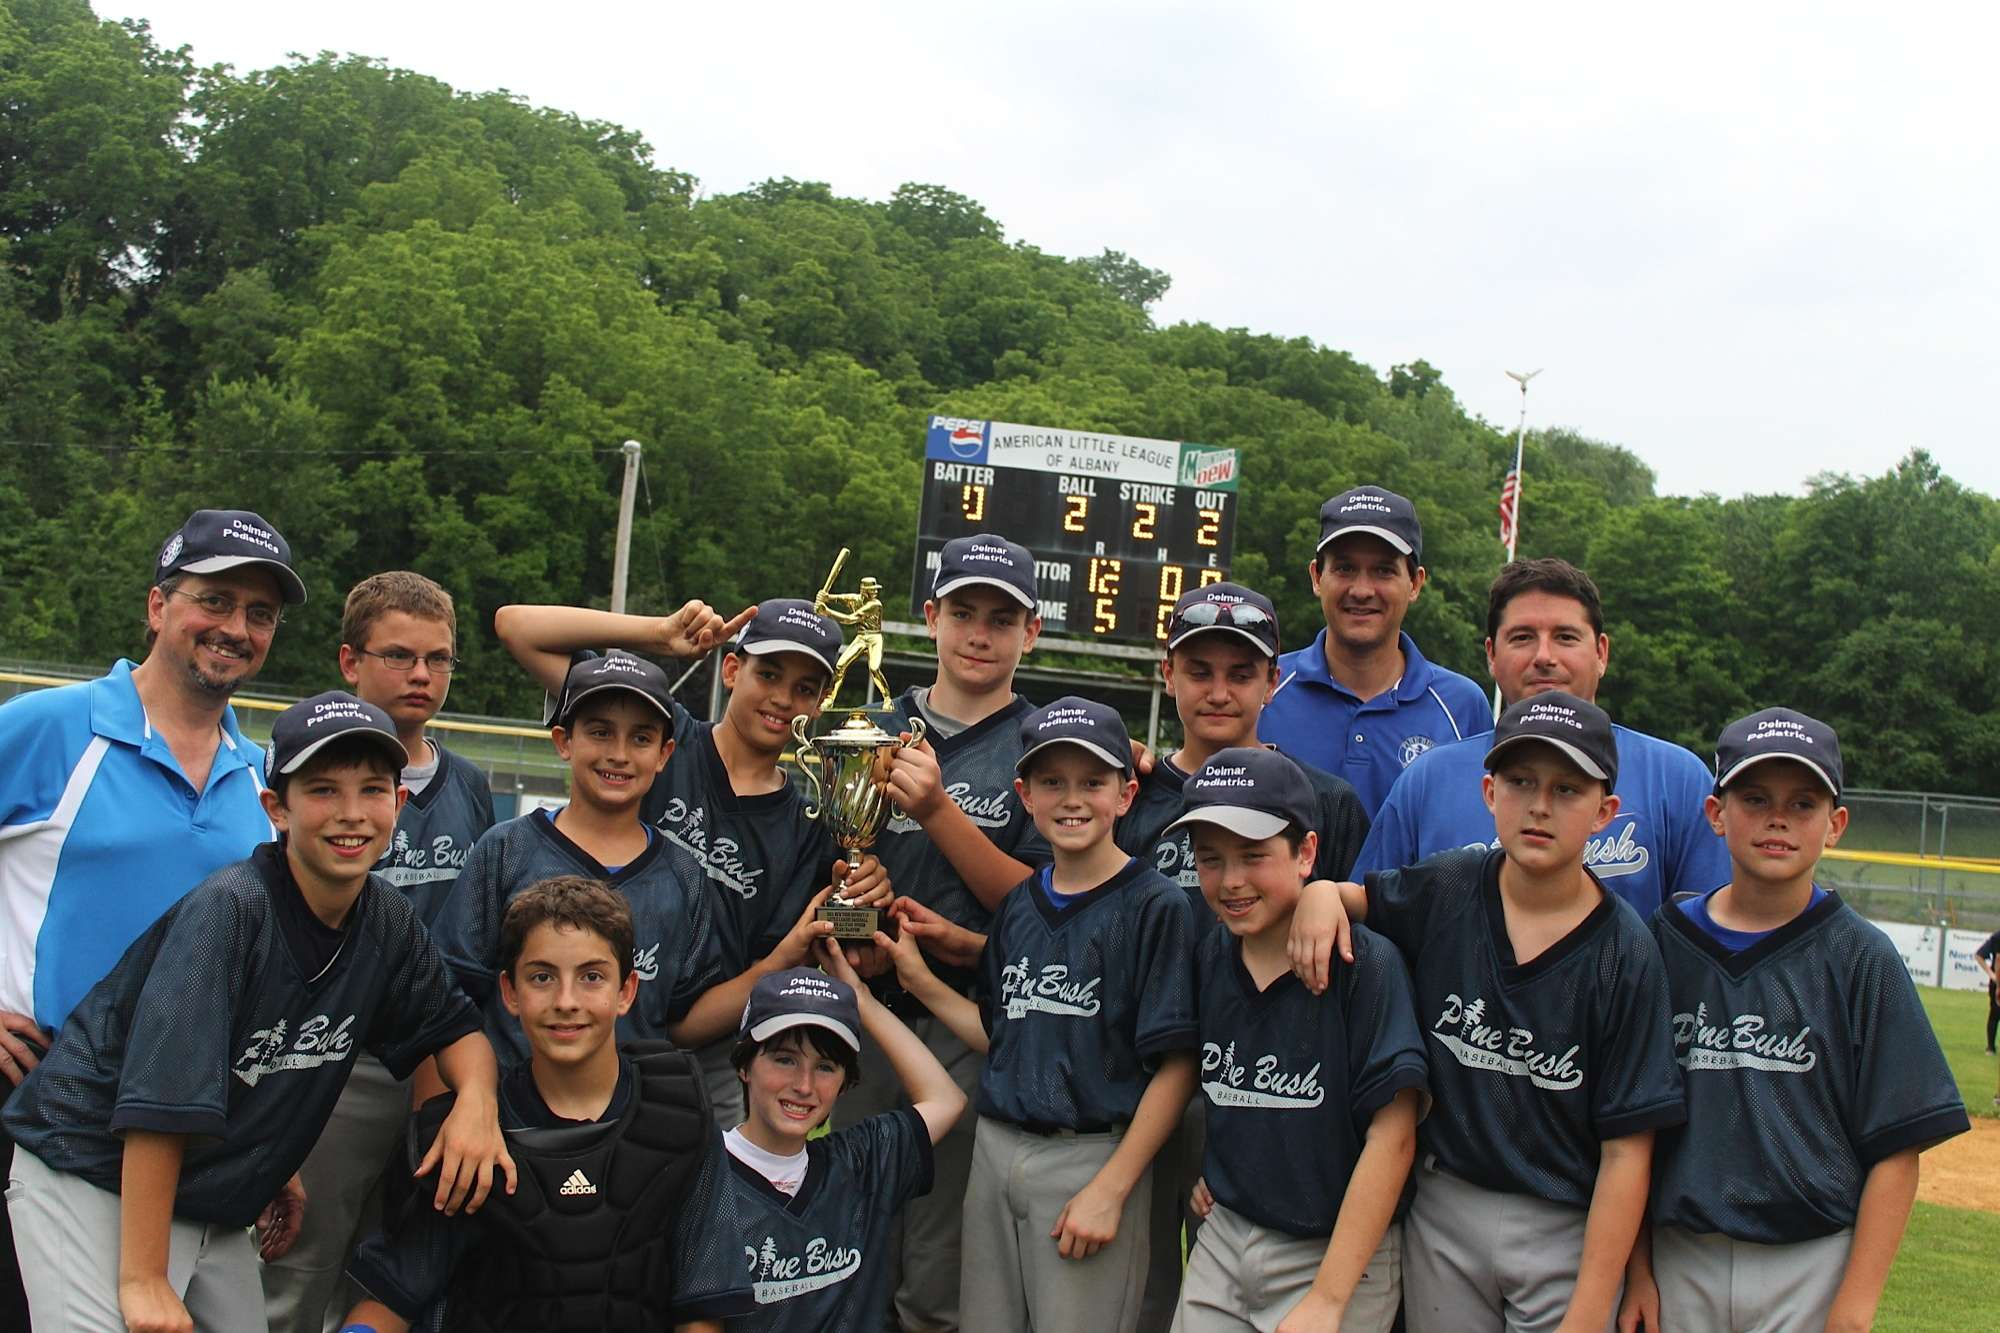 2013 City County Major Champs-Pine Bush National.jpg